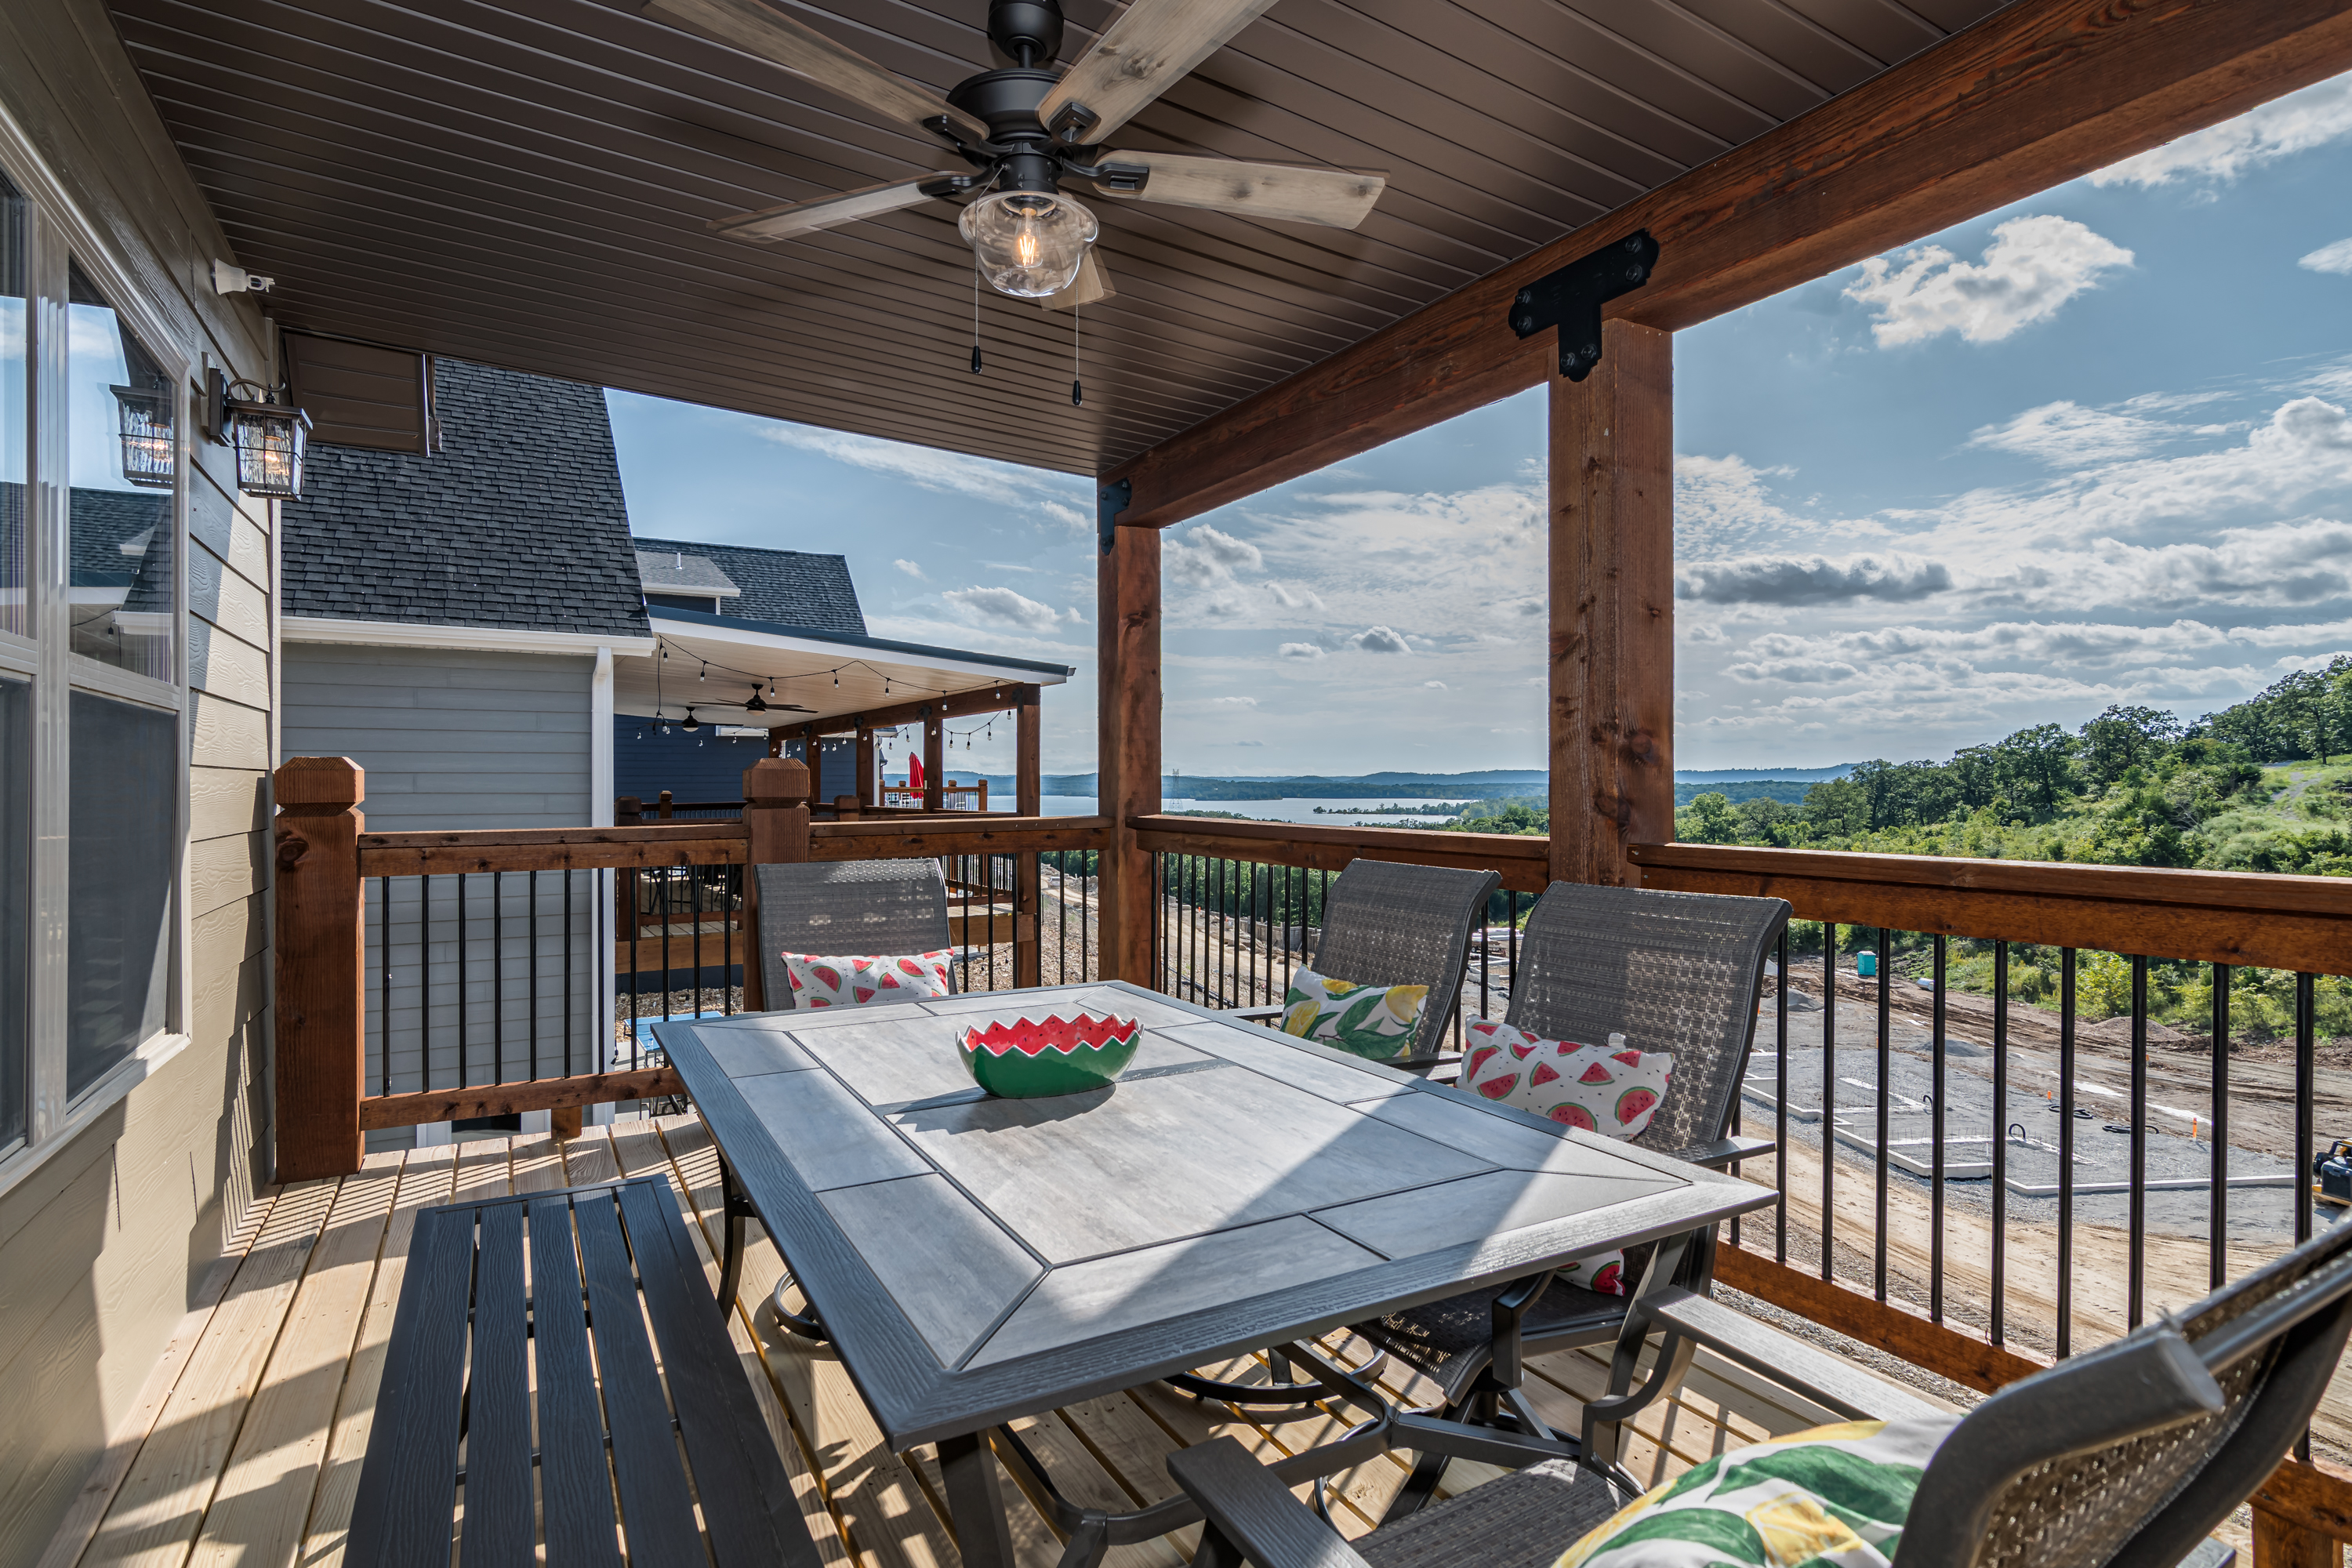 Noni's Lakeview Lodge - Branson